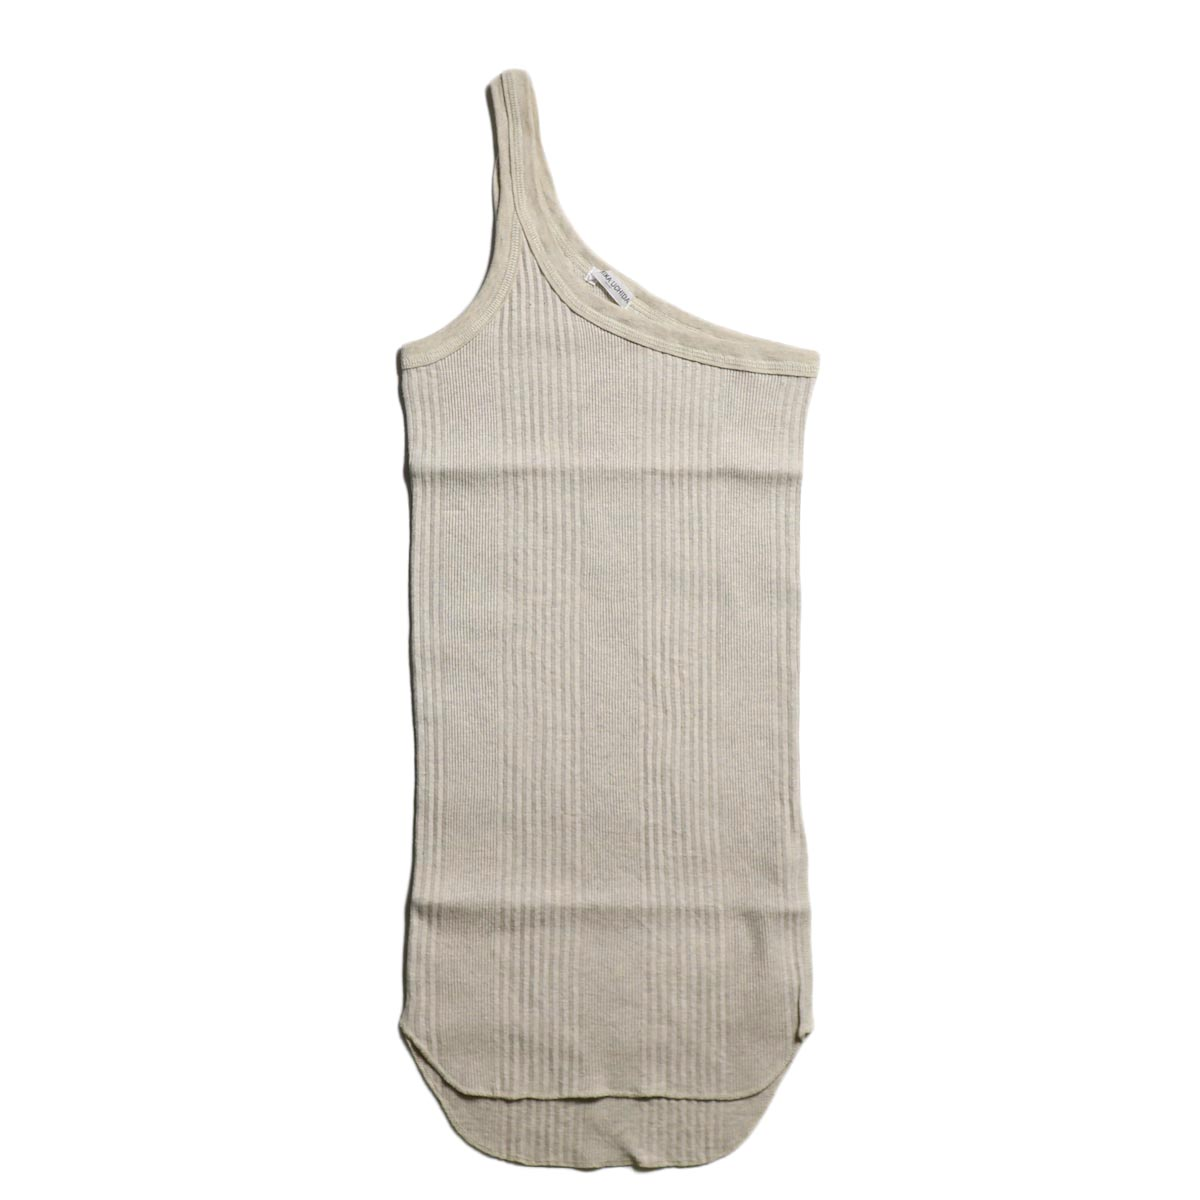 FUMIKA UCHIDA / COTTON RIB ONESHOULDER TANK TOP-OATMEAL